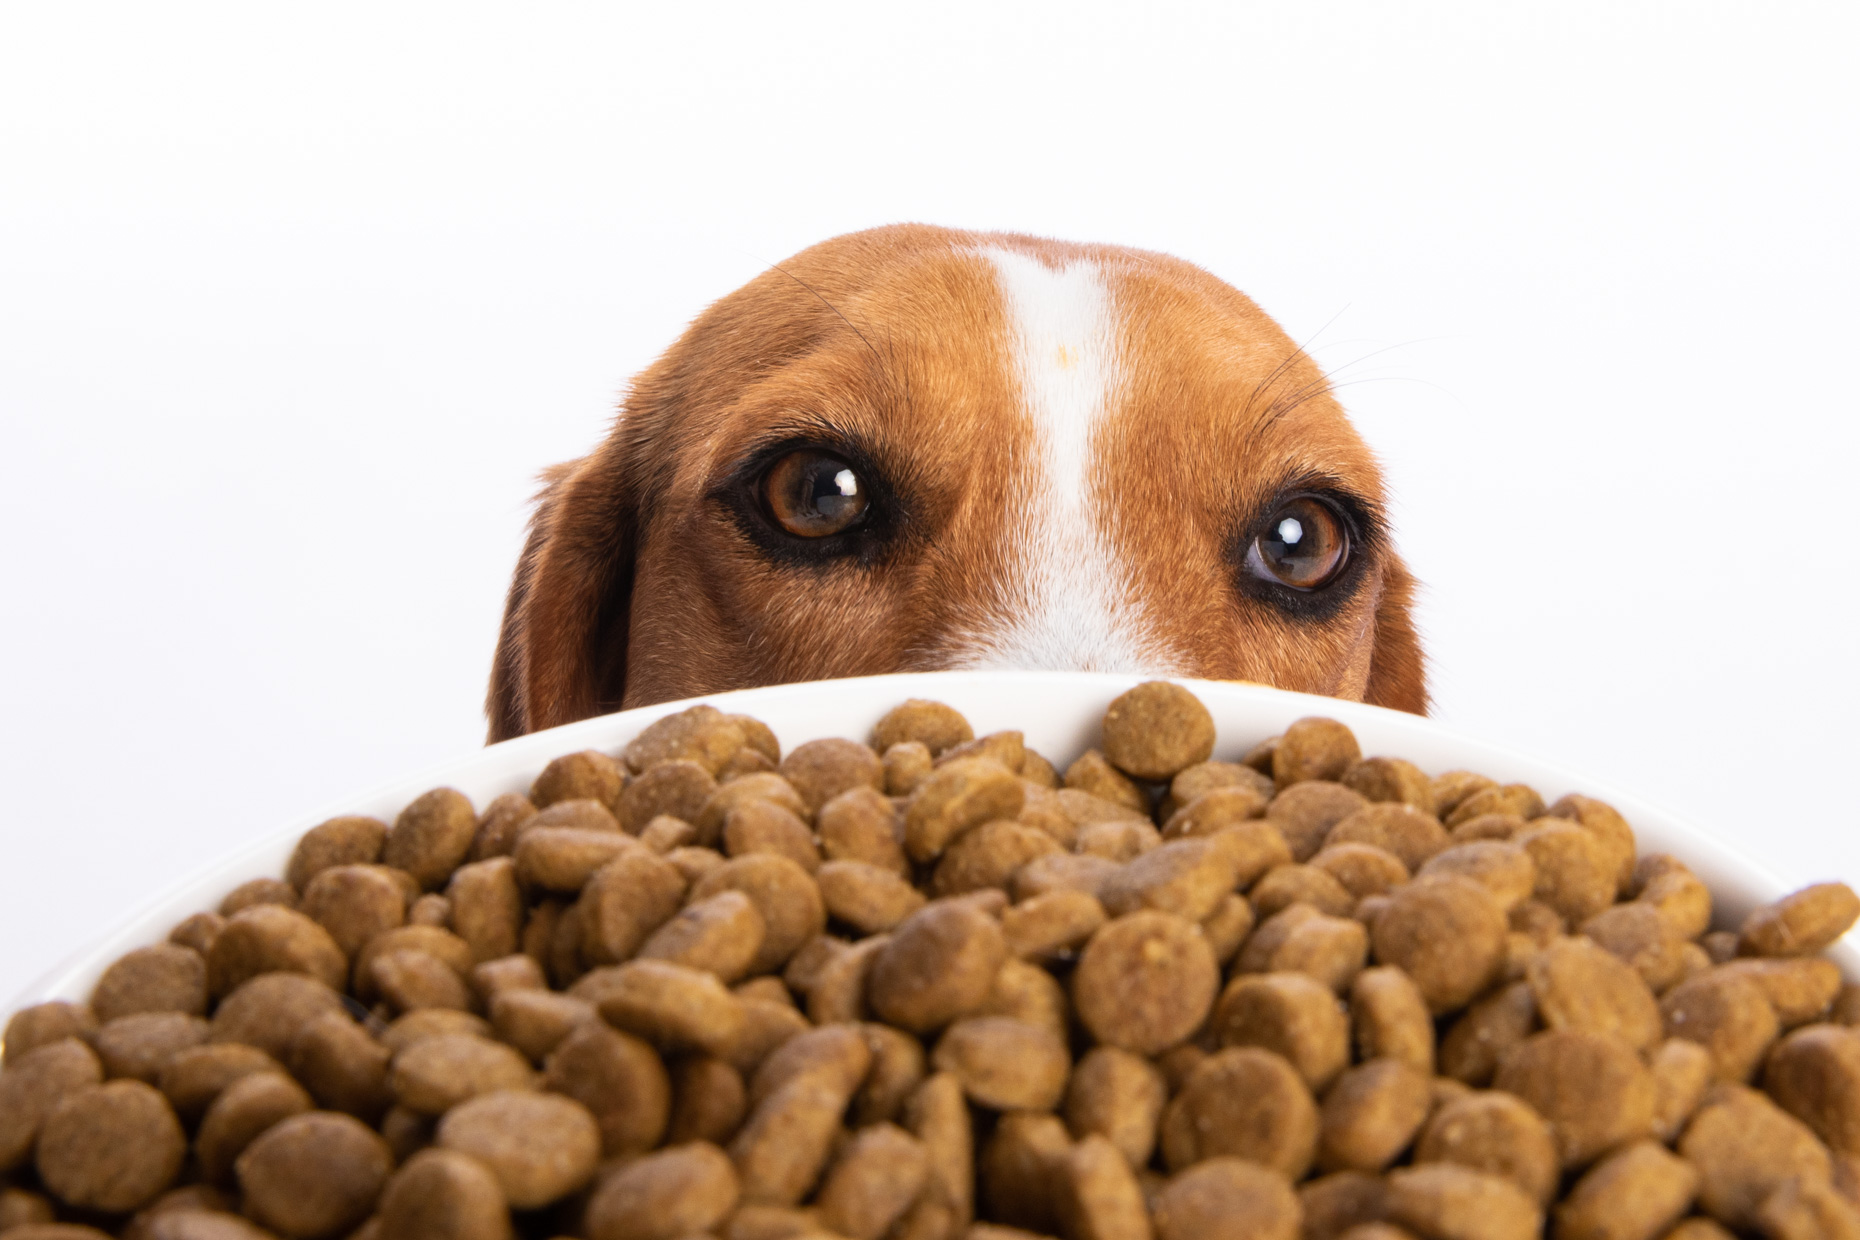 Dog Studio Photography | Beagle Staring at Food by Mark Rogers